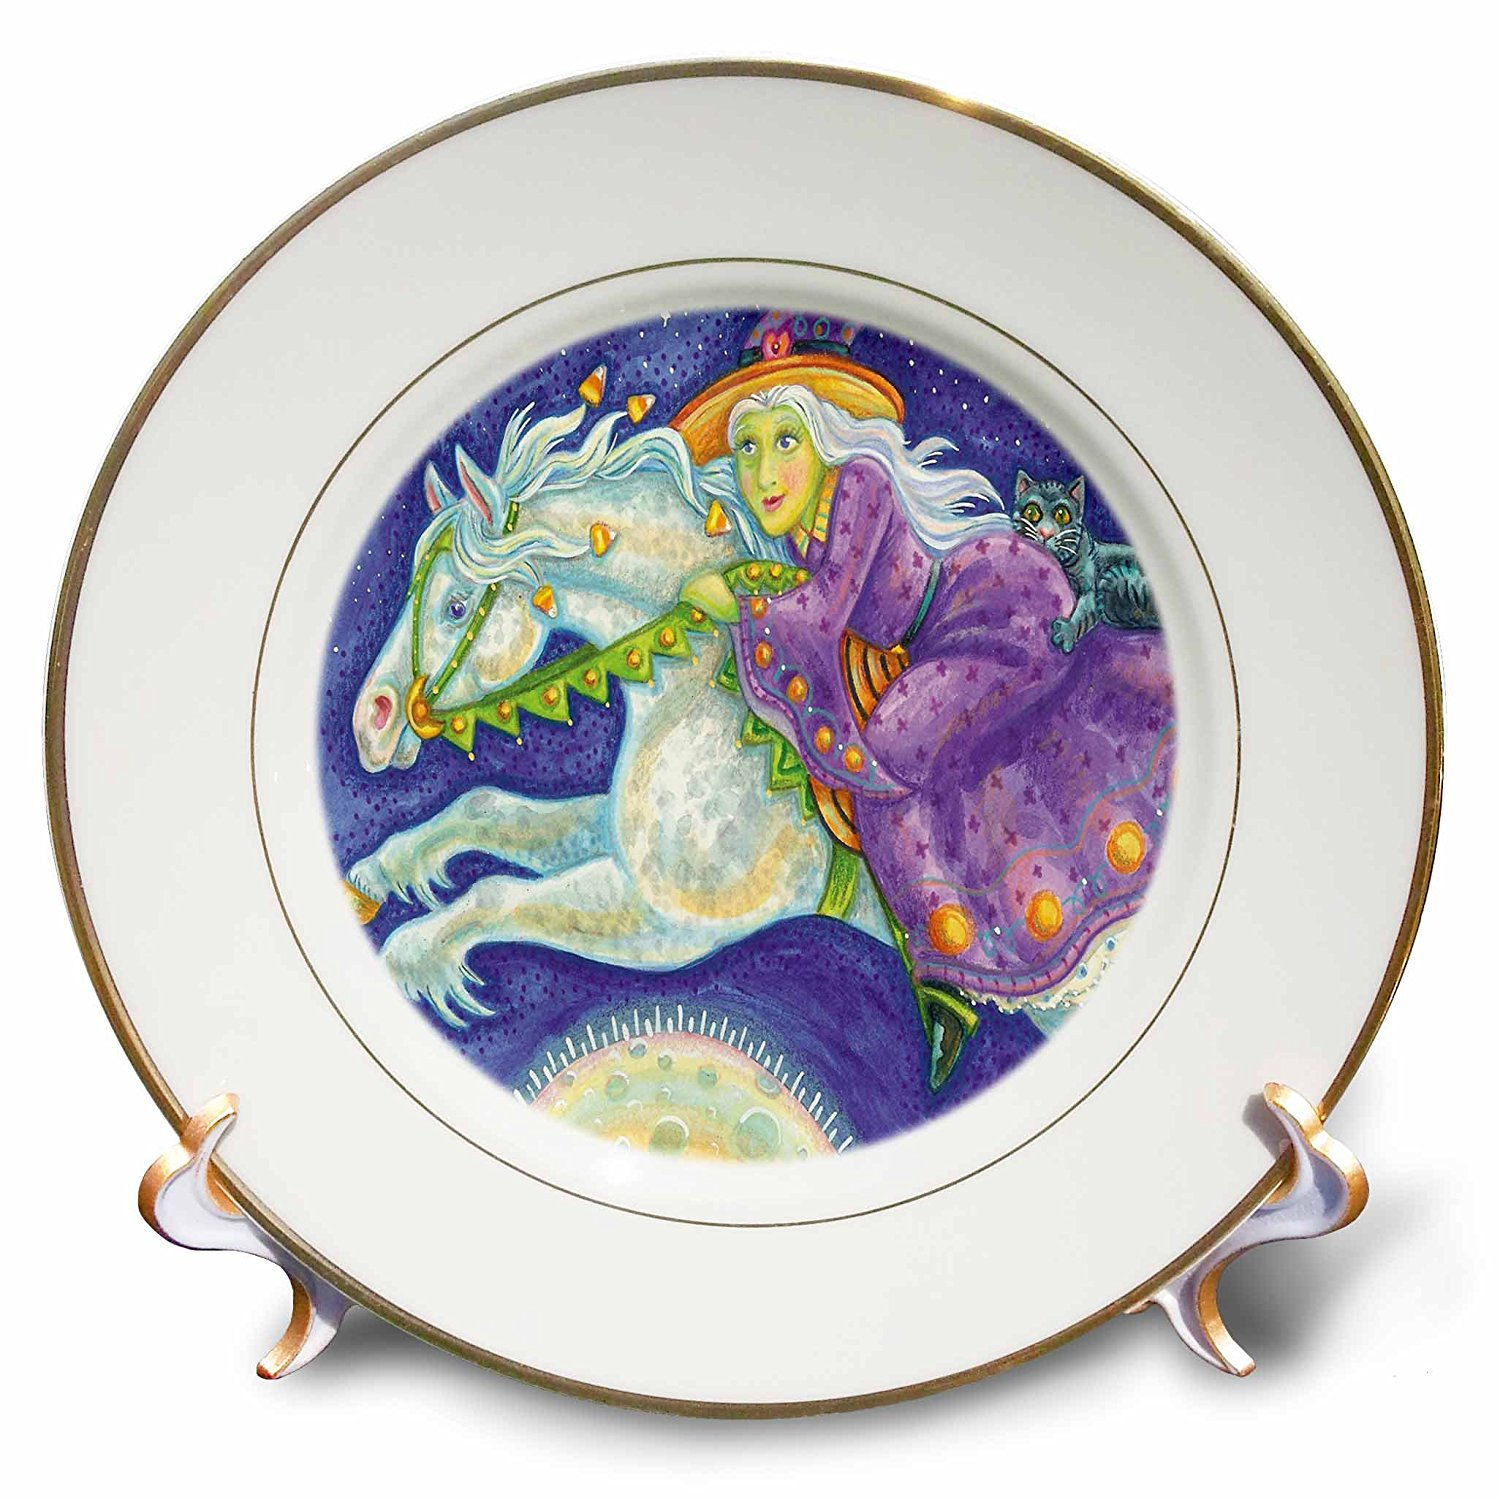 Anne Marie Baugh - Halloween - Cute Halloween Witch Riding Her Halloween Horse Illustration - 8 inch Porcelain Plate (cp_216752_1)